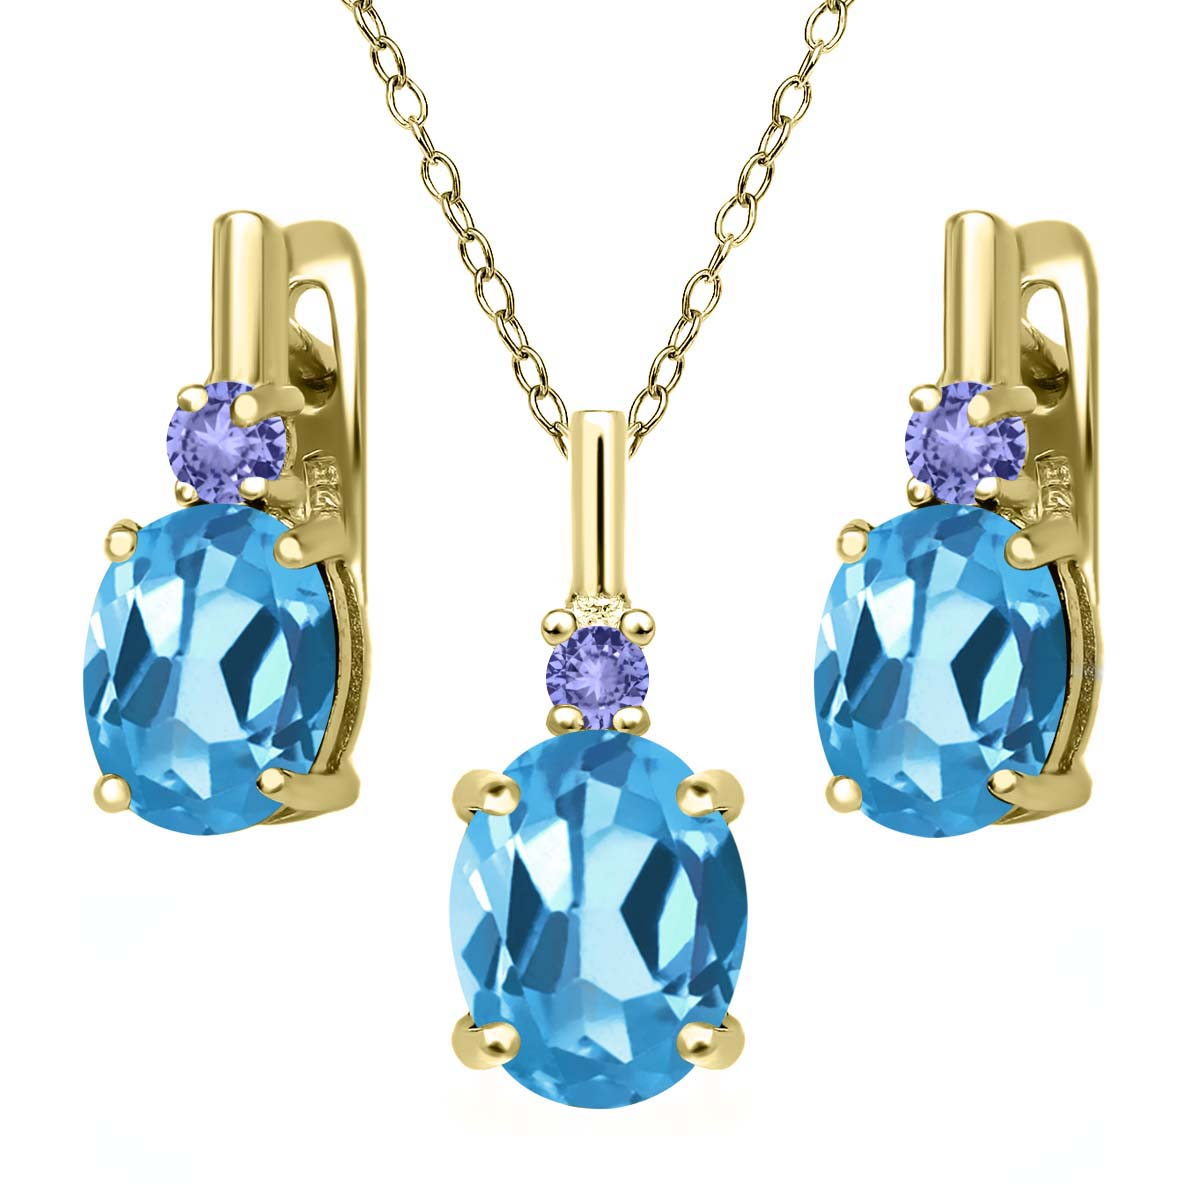 6.68 Ct Swiss Blue Topaz Blue Tanzanite 18K Yellow Gold Plated Silver Pendant Earrings Set by